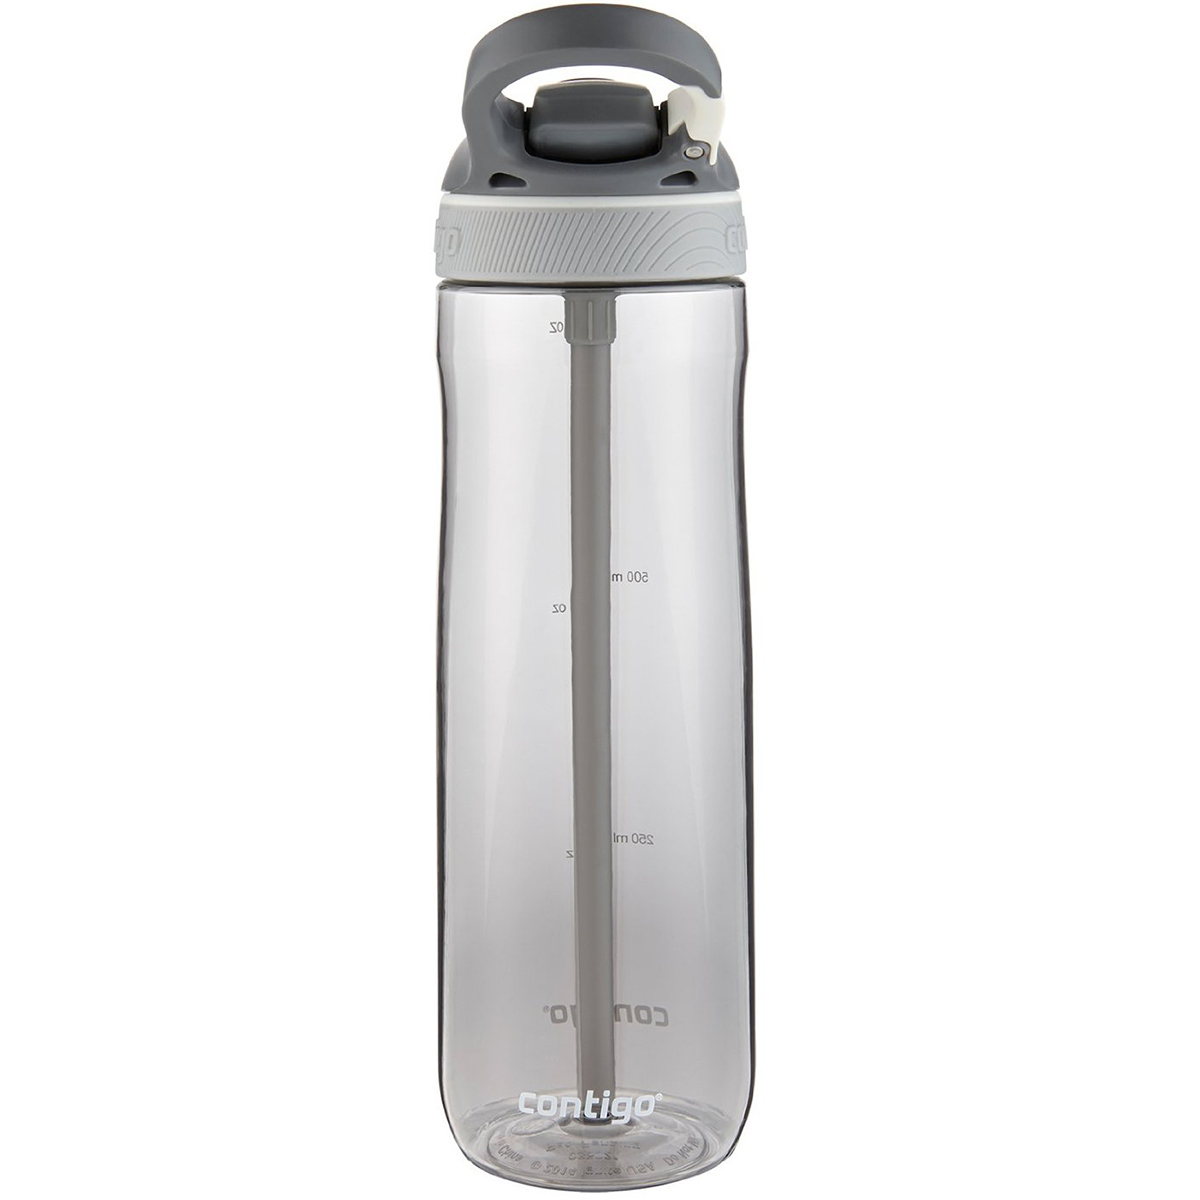 Contigo-24-oz-Ashland-Autospout-Water-Bottle Indexbild 18